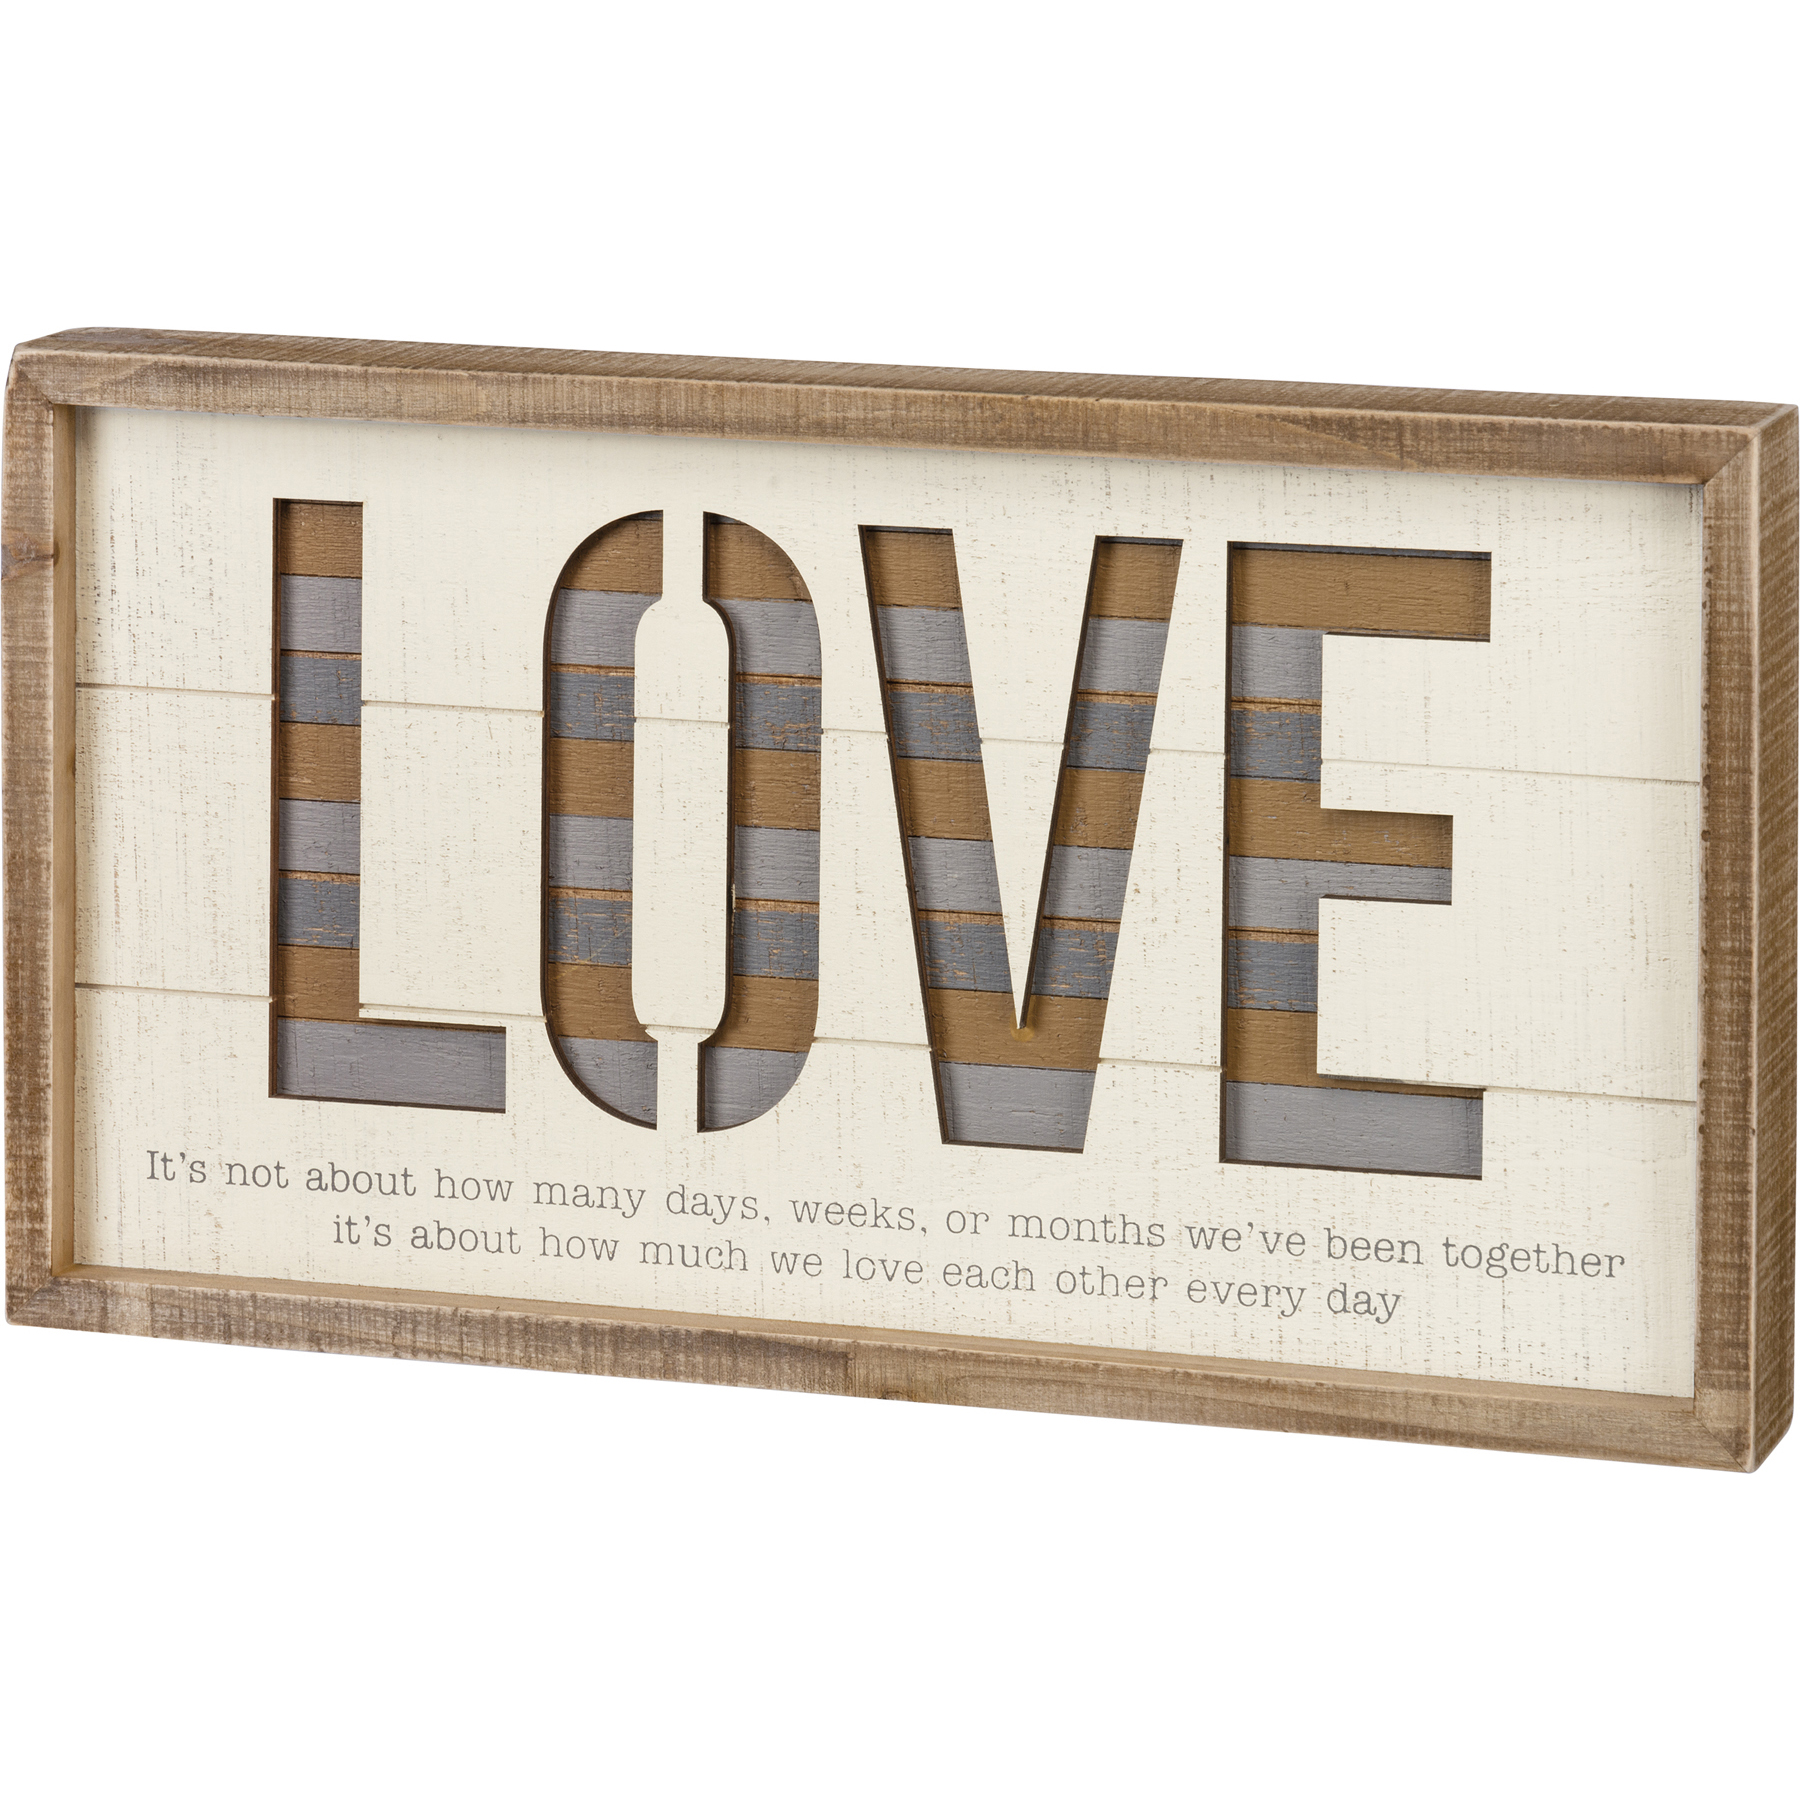 Large Love Each Other Every Day Decorative Inset Wooden Box Sign Wall Décor 18x10 From Primitives By Kathy